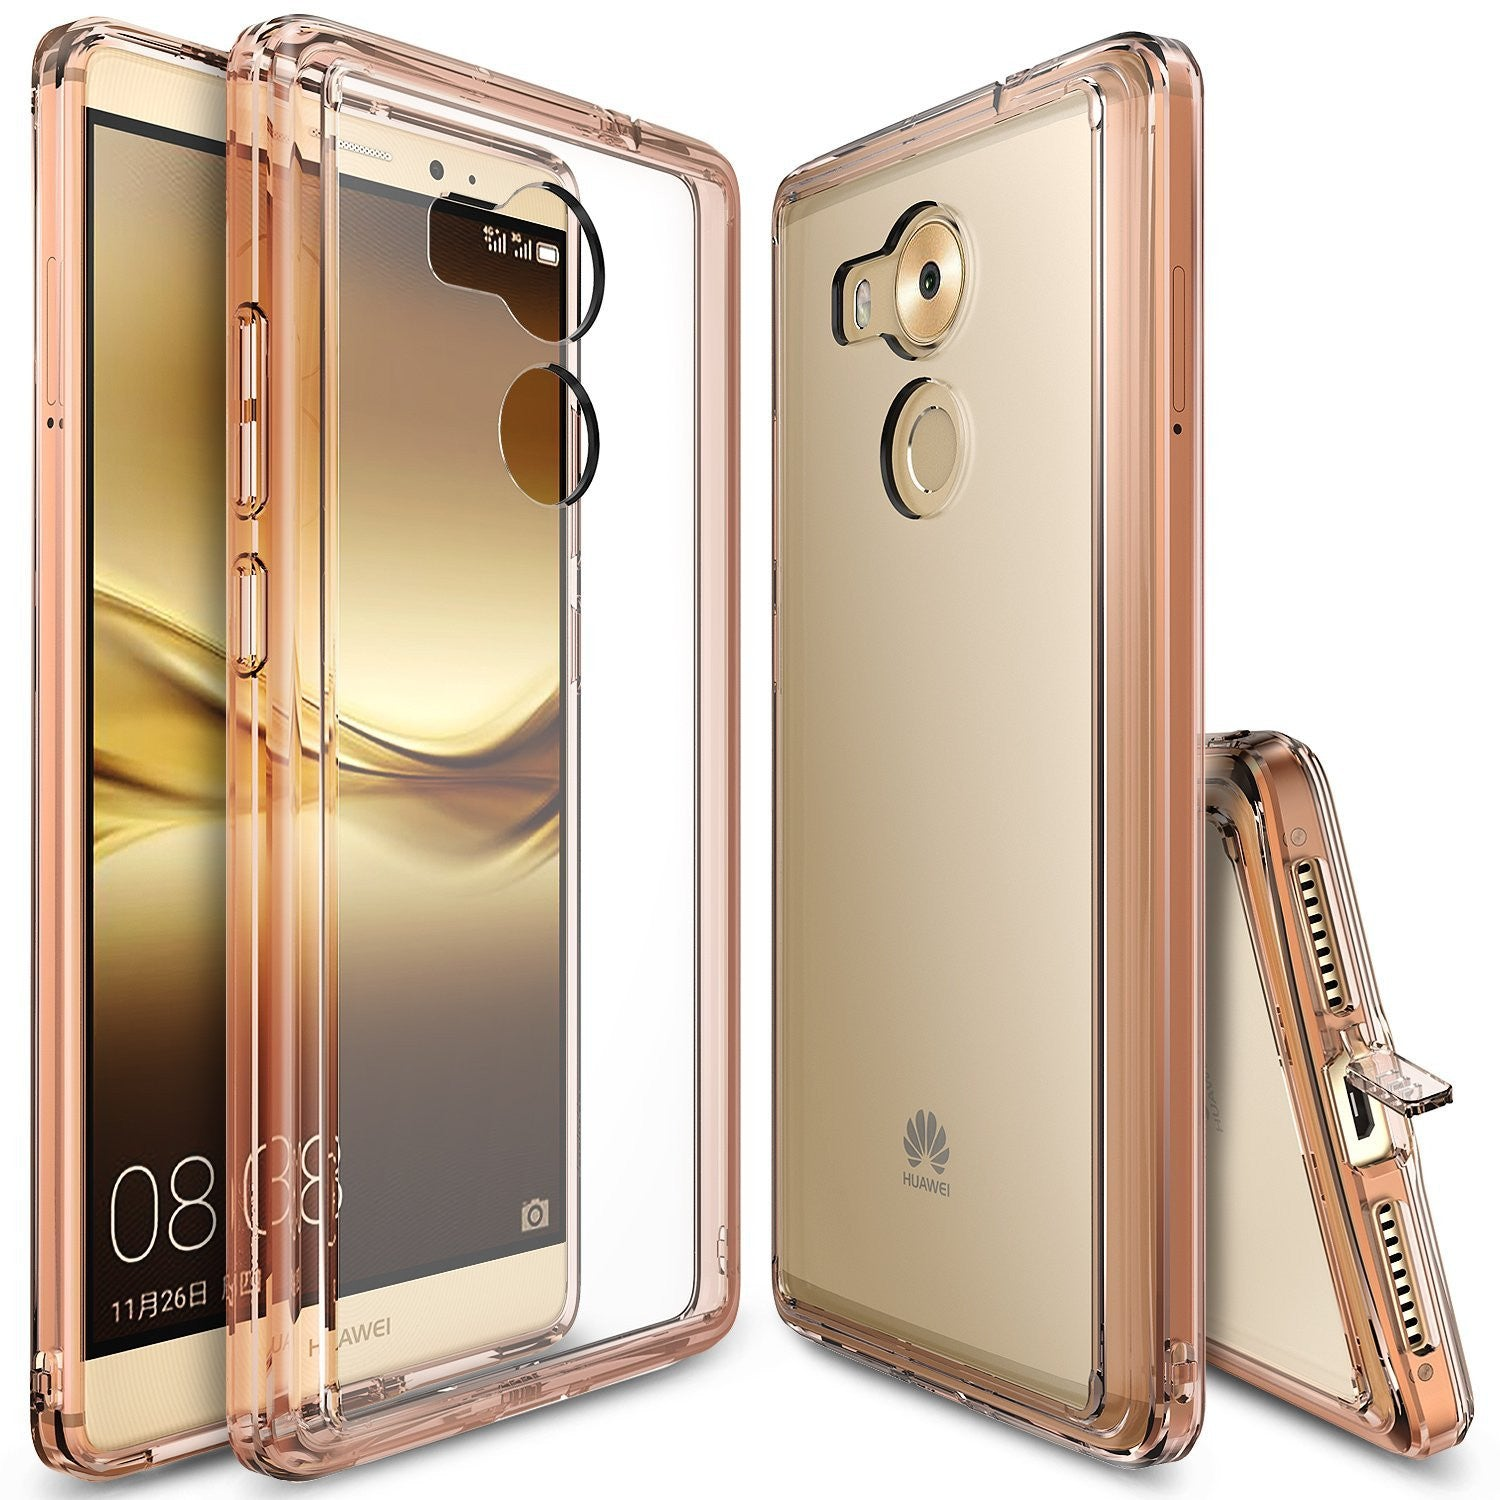 huawei mate 8 case, ringke fusion case crystal clear pc back tpu bumper case - rose gold